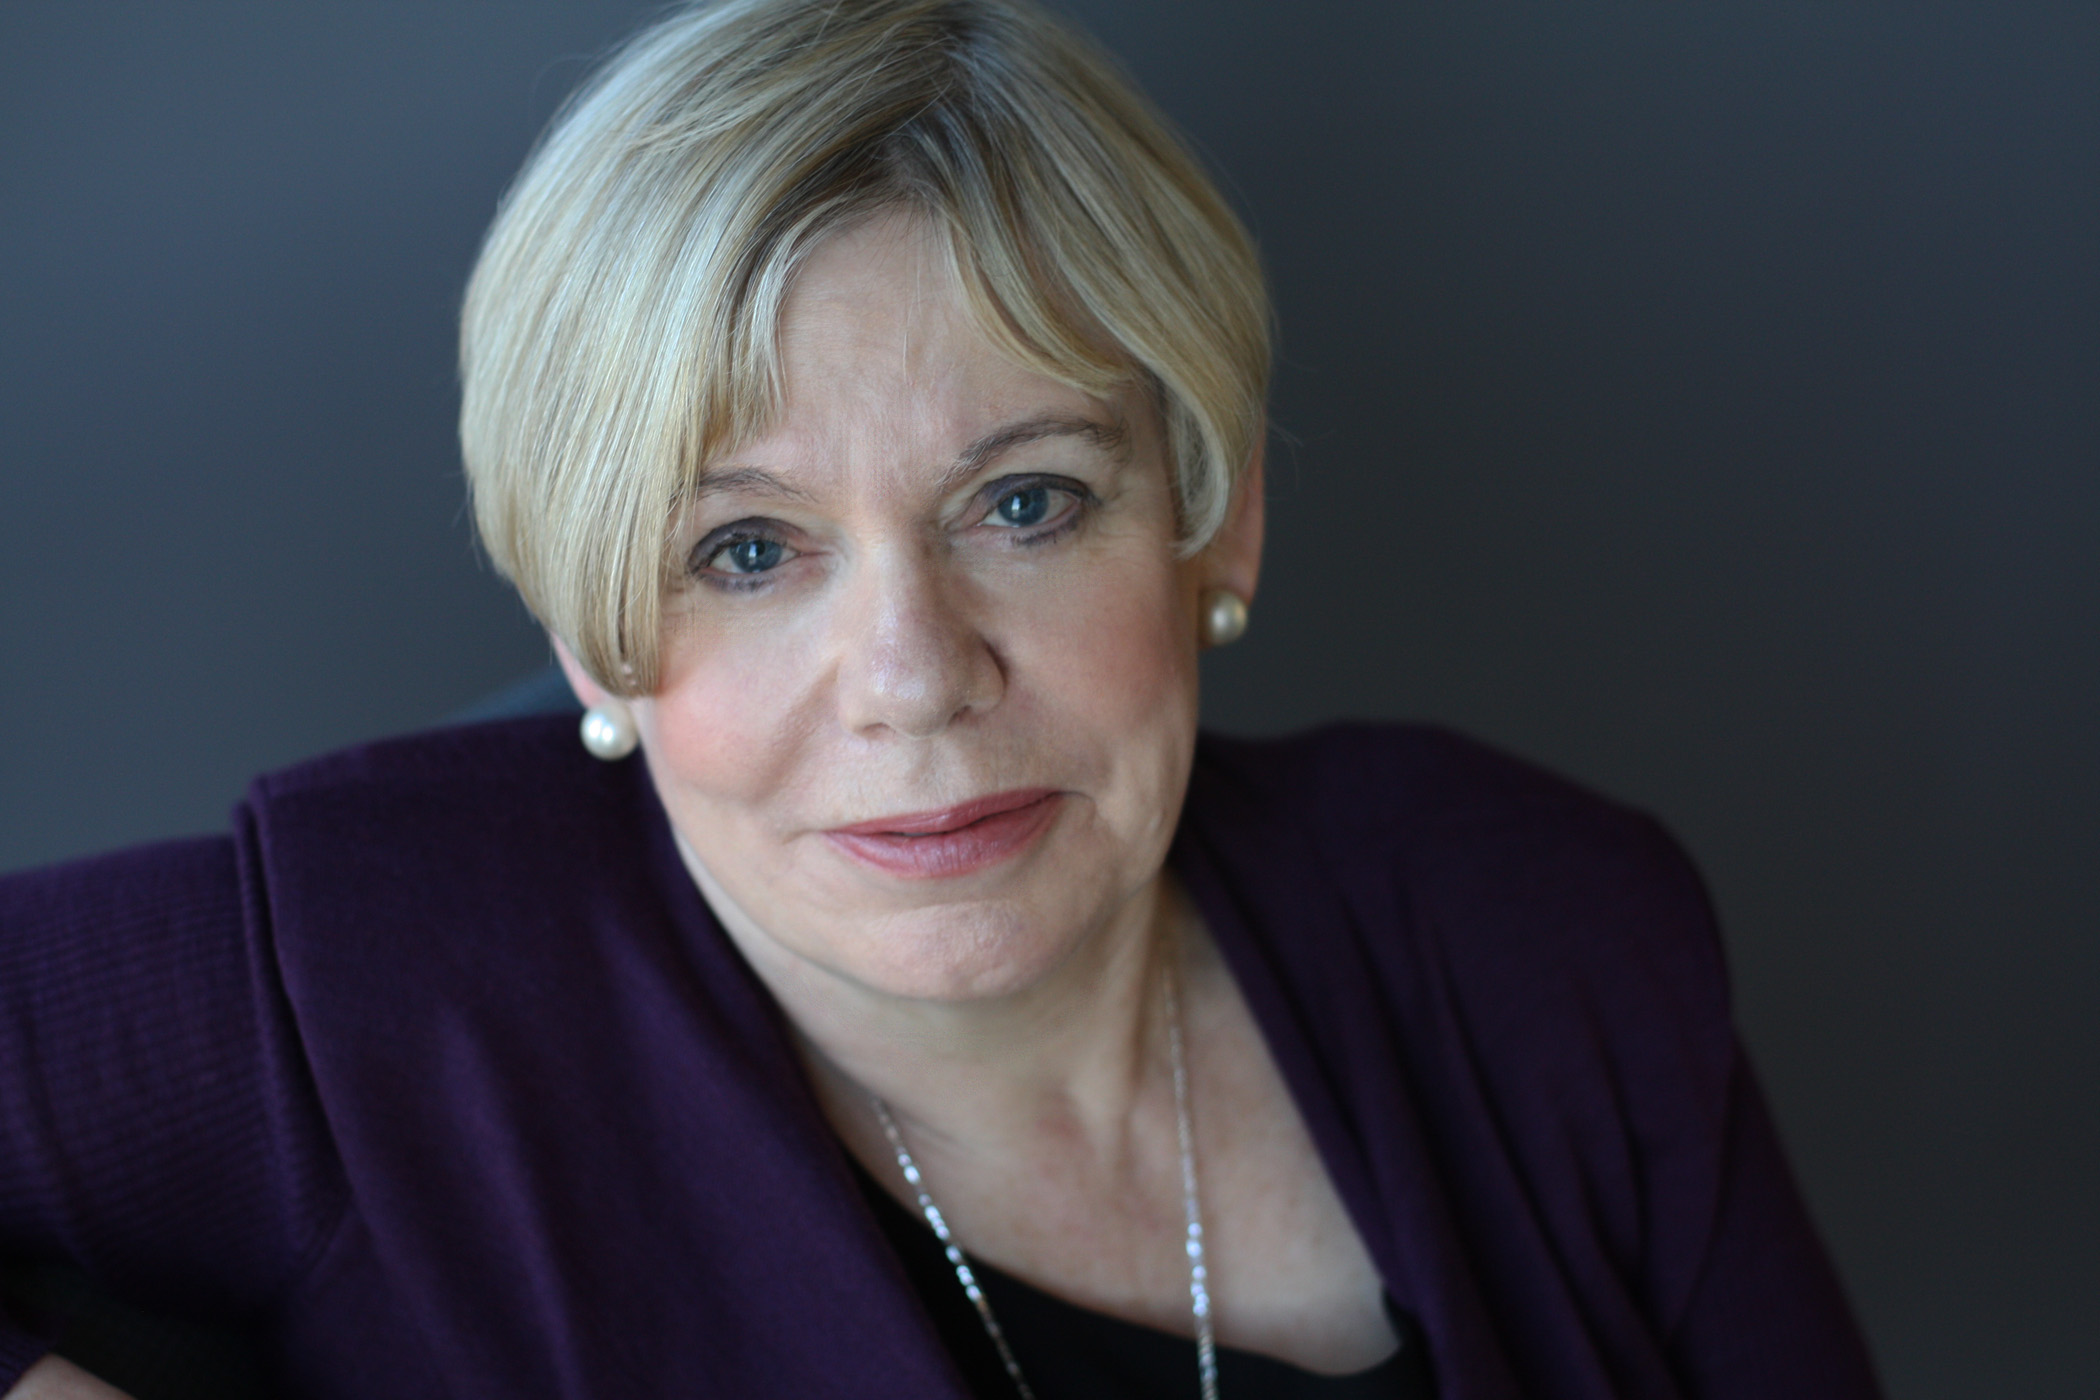 Photograph of Karen Armstrong